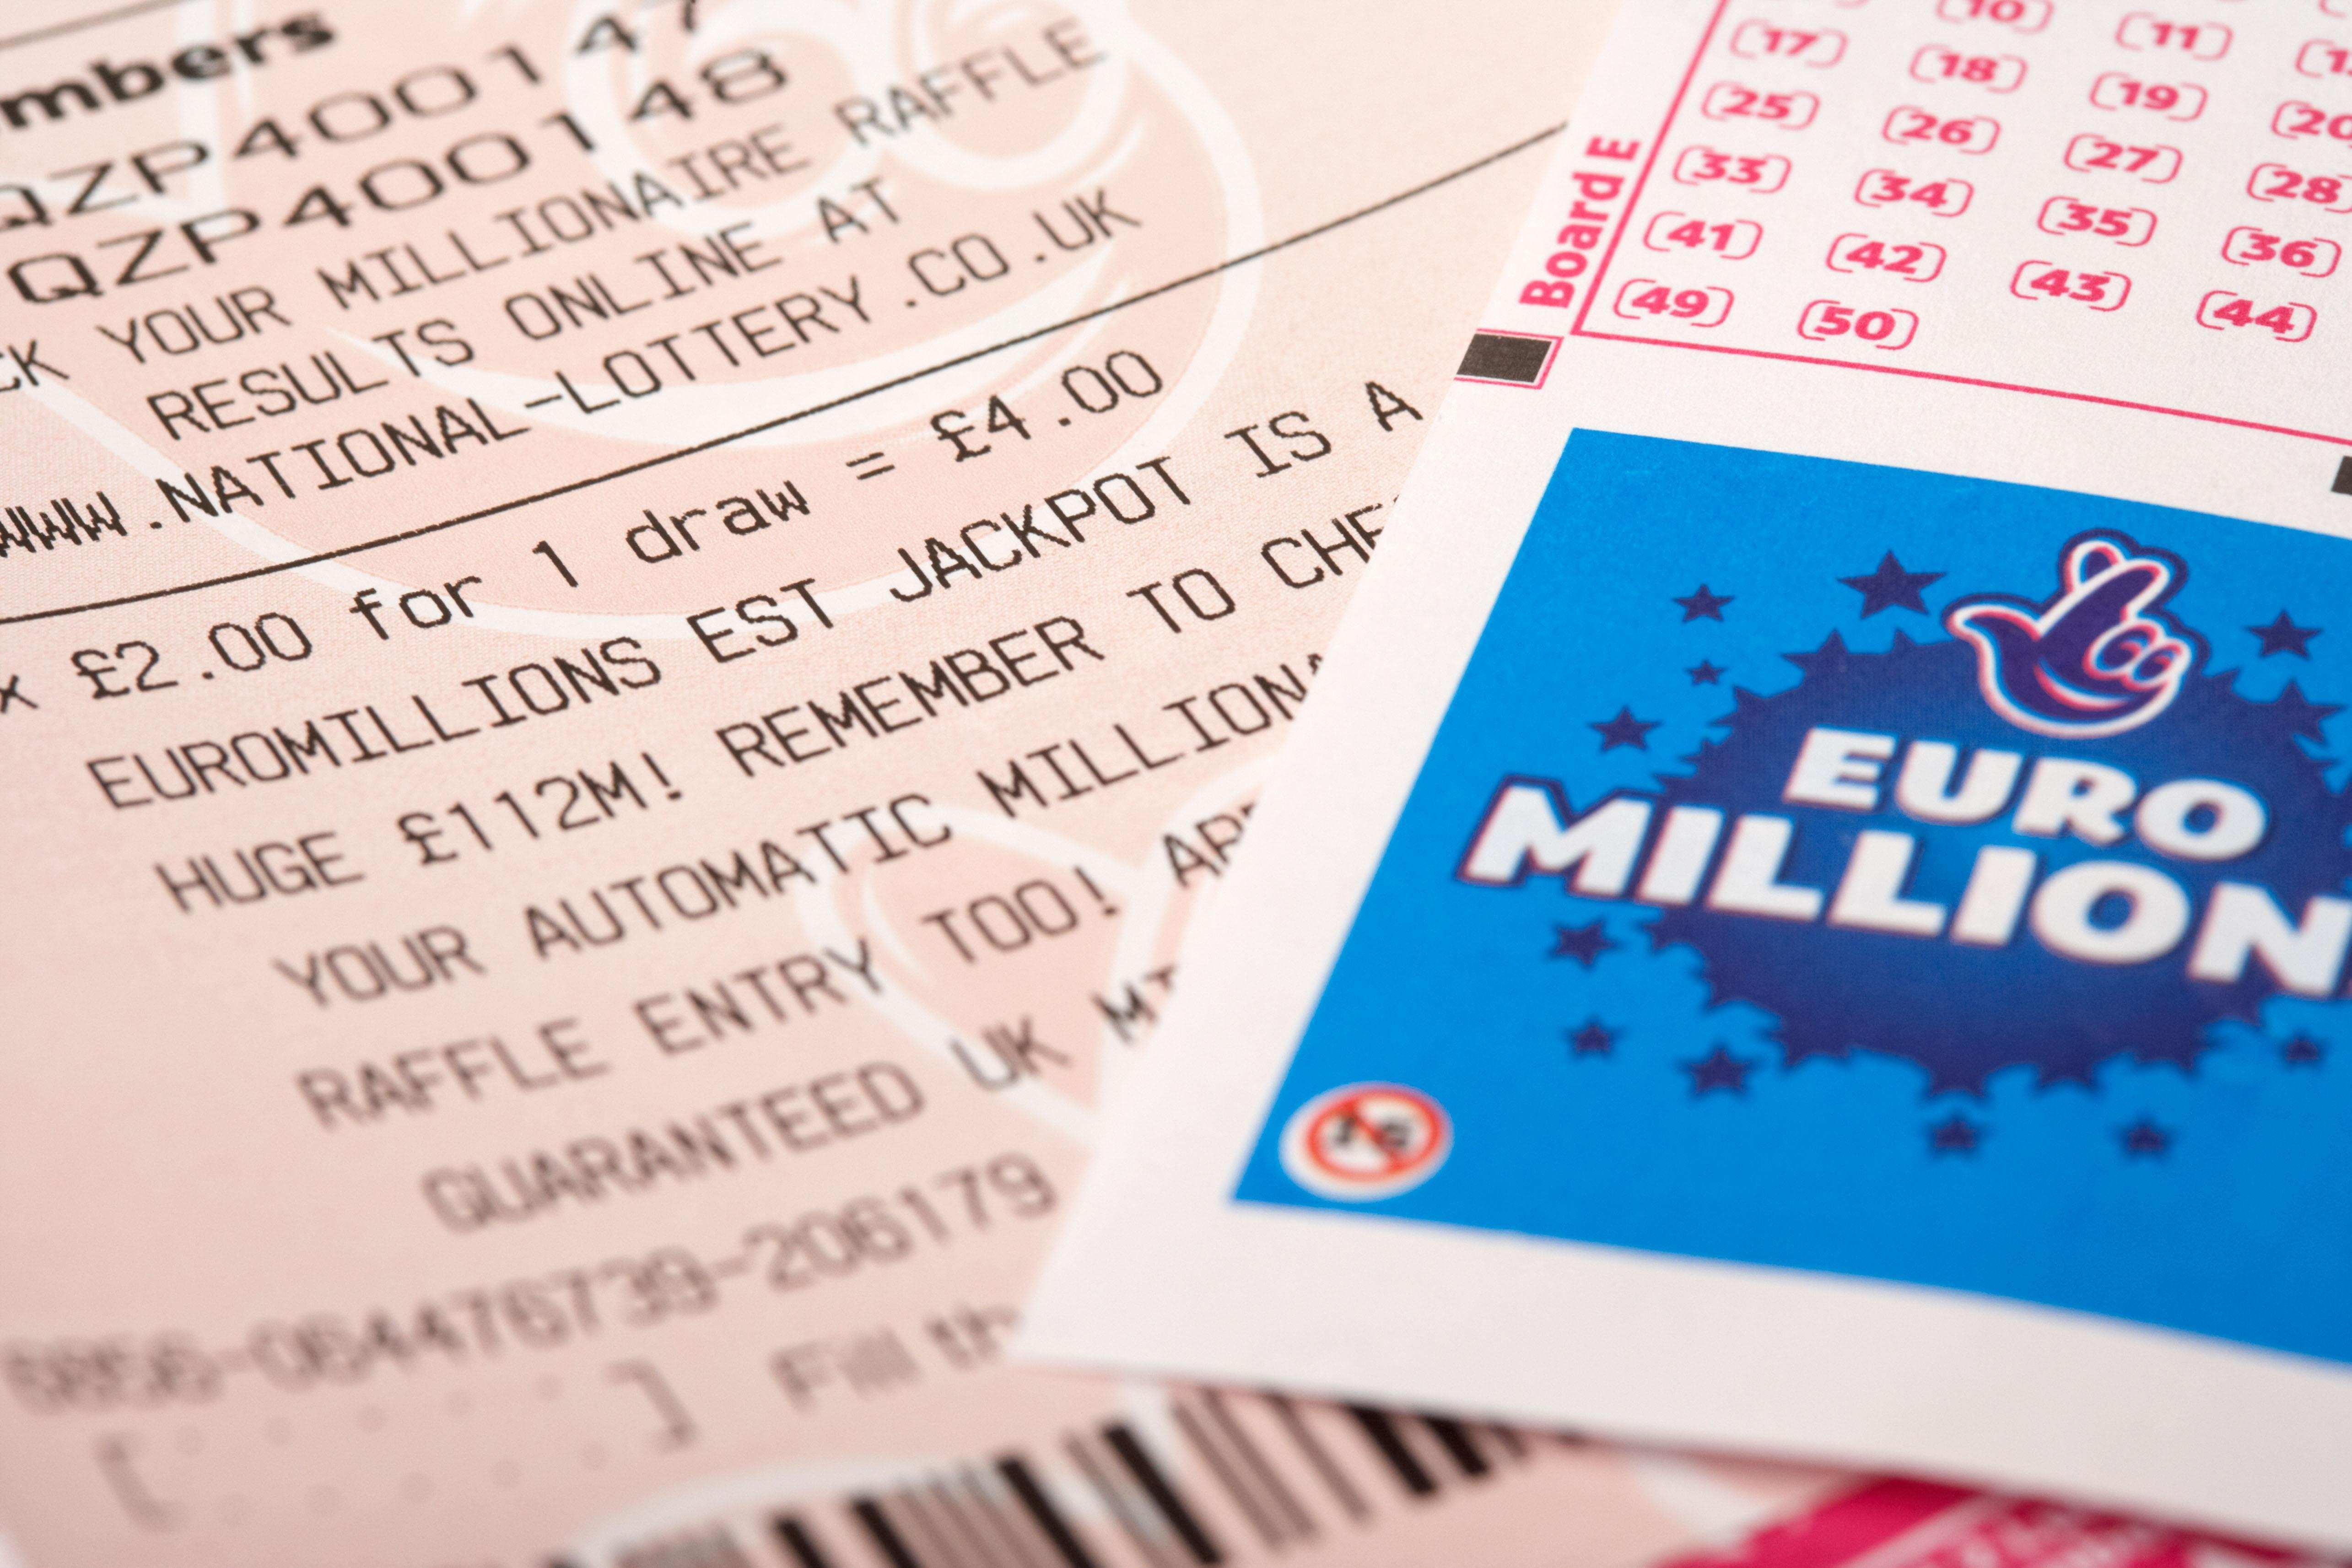 Euromillions results for friday 5th august 2016 - draw 926